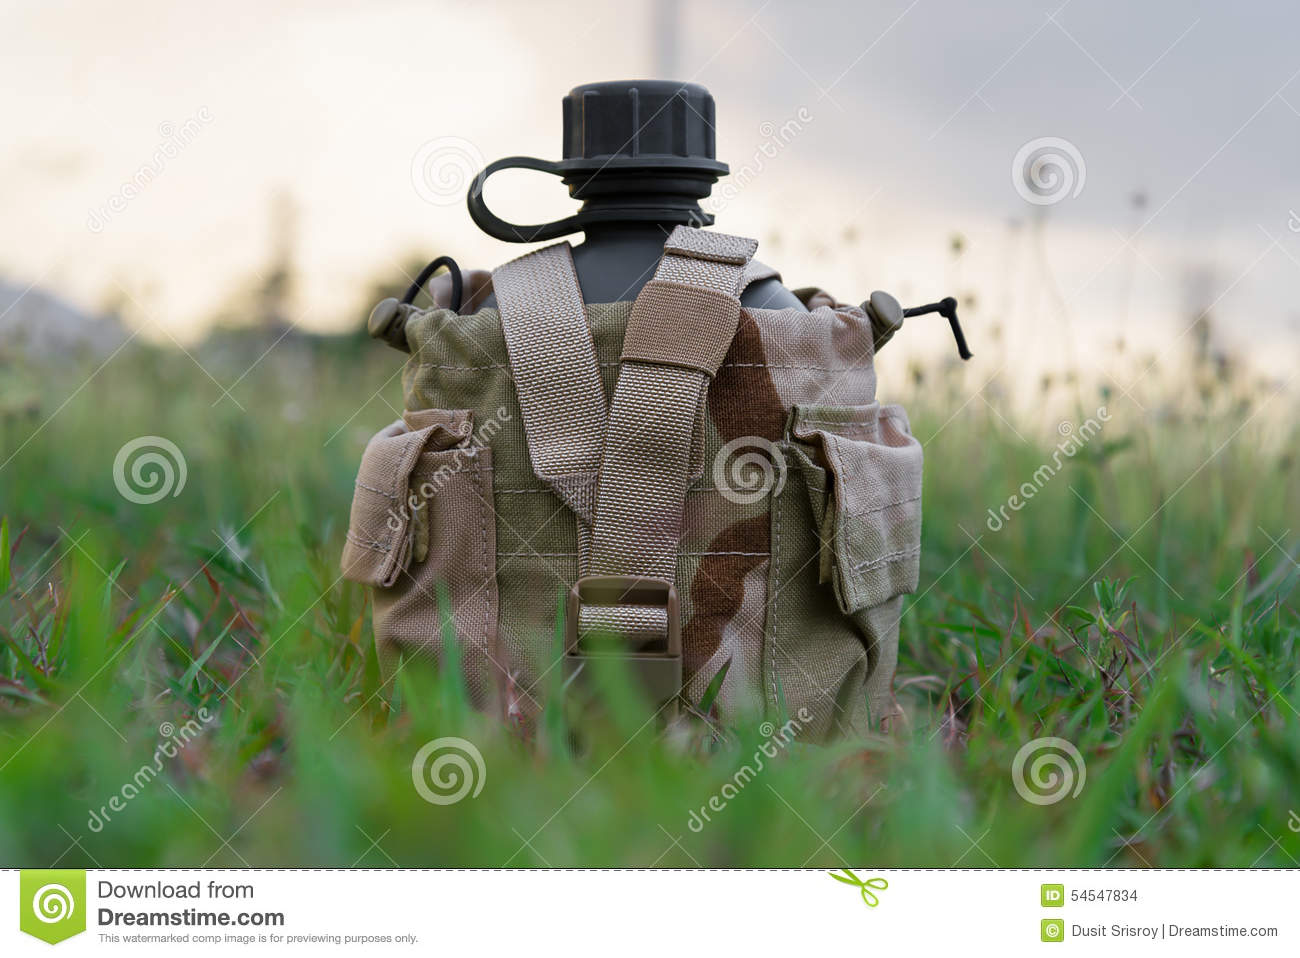 Download Army Water Canteen With Desert Cover Stock Photo - Image of image, army: 54547834